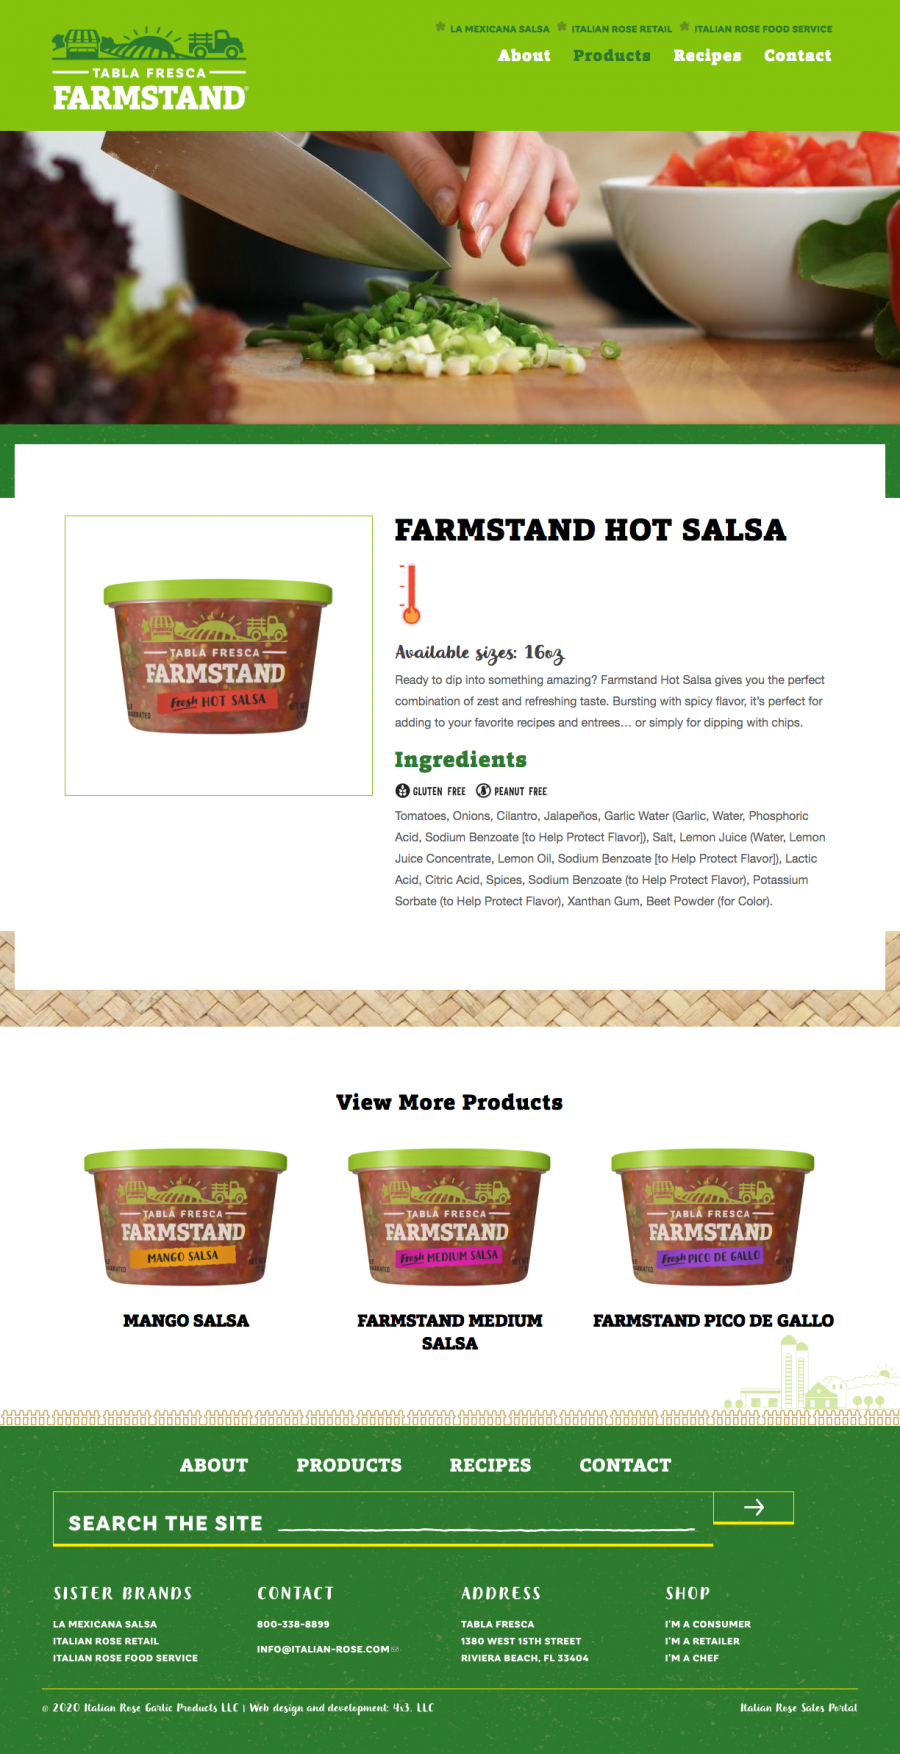 Tabla Fresca Farmstand product page